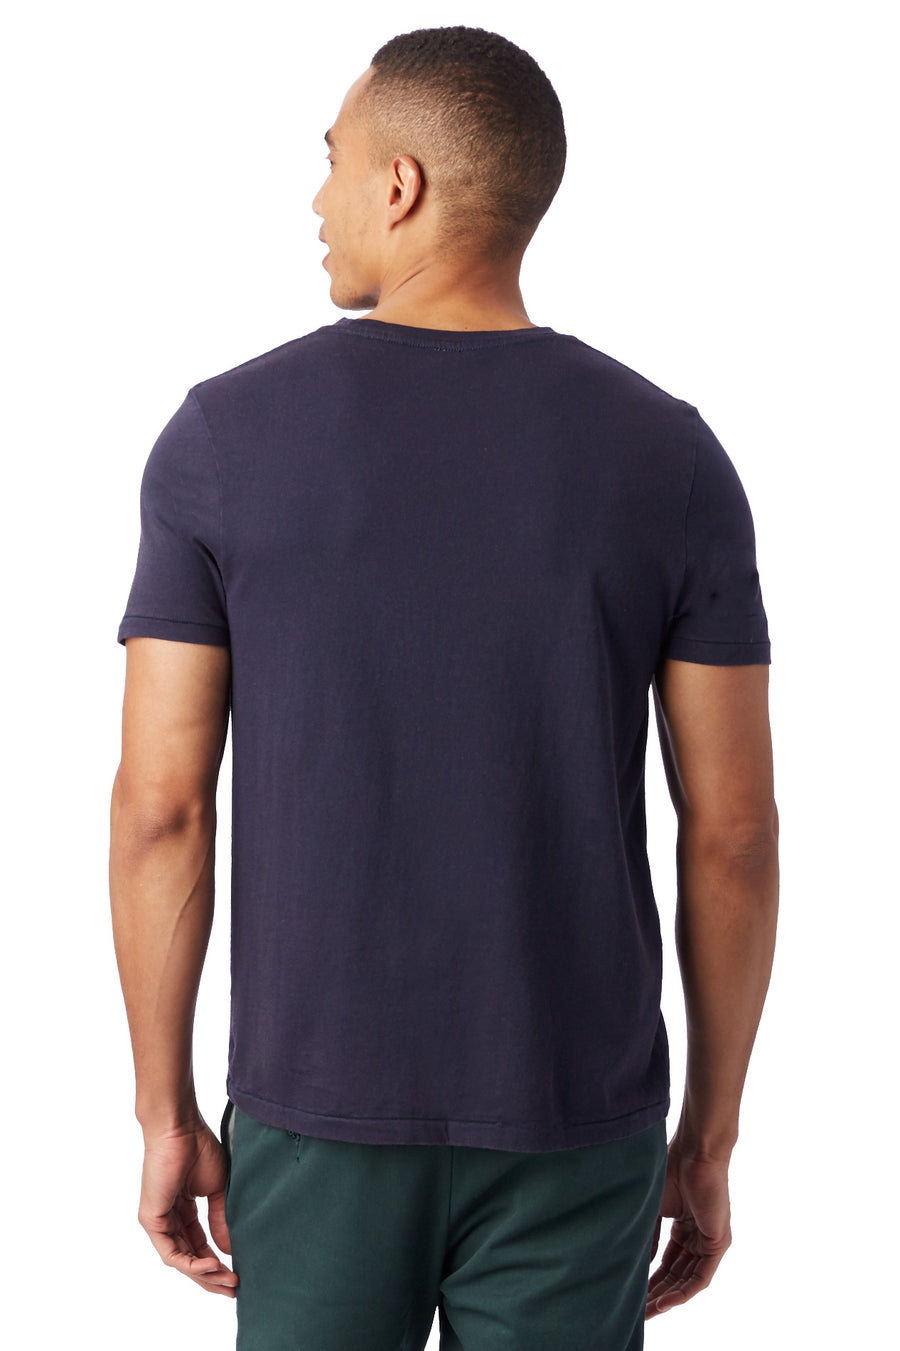 The Outsider Tee - Navy